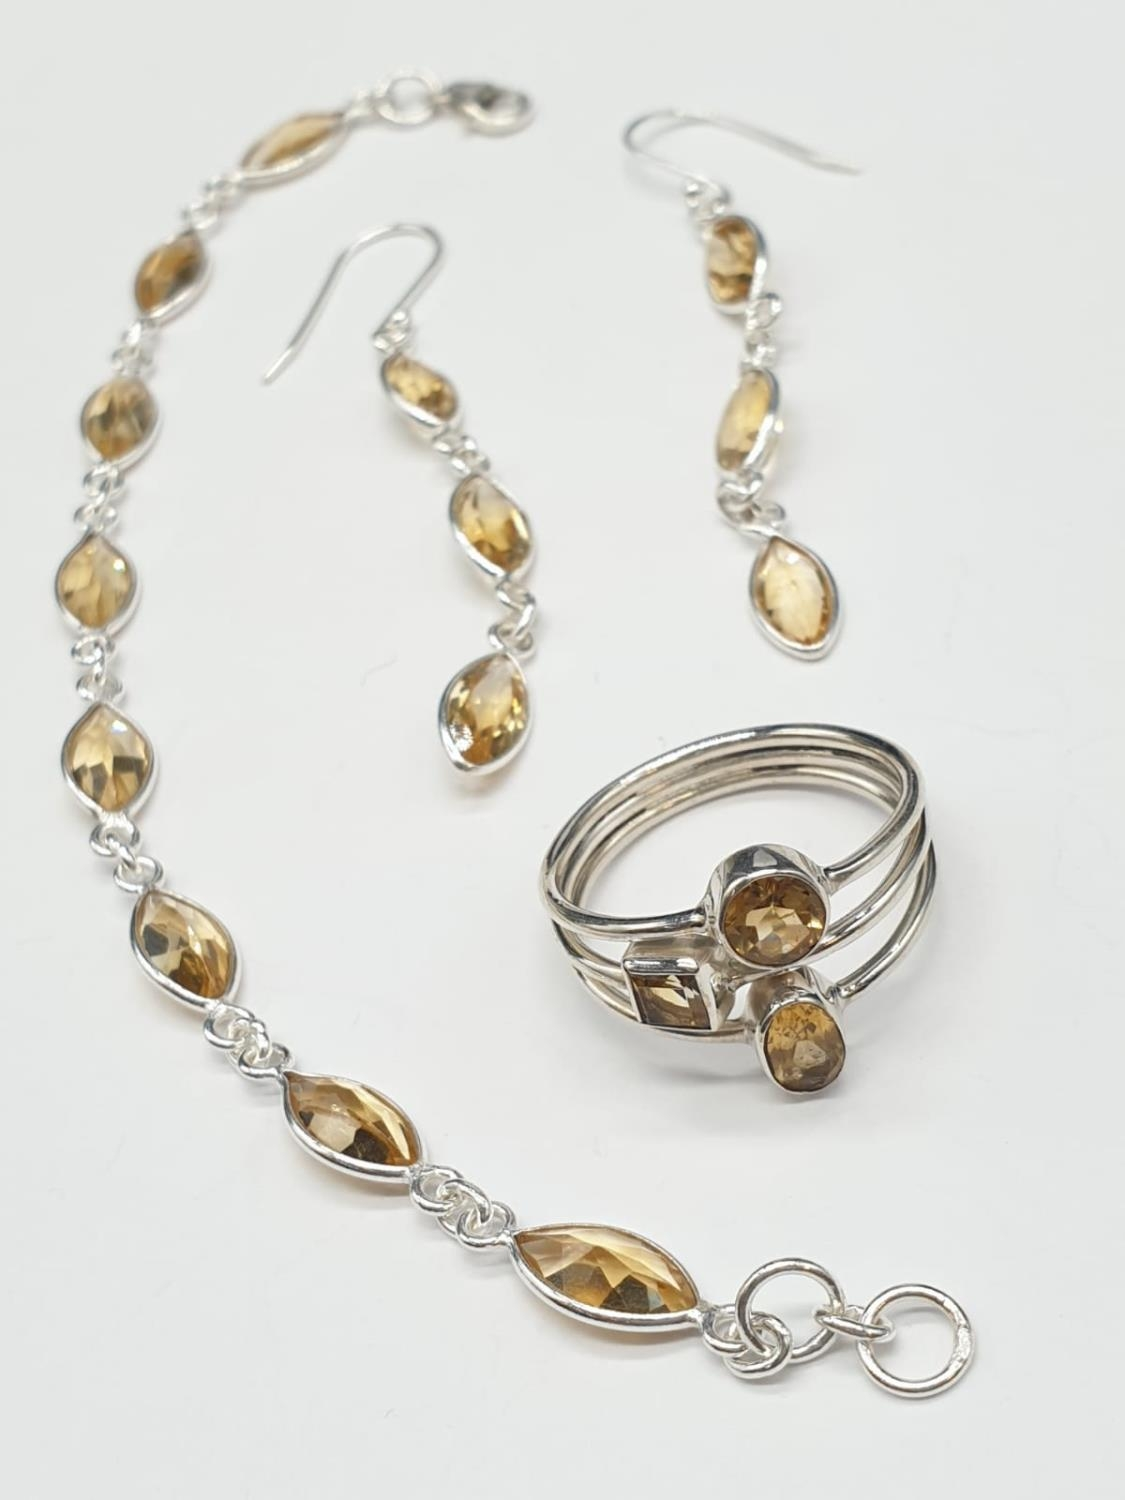 Marquise Shape Citrine Bracelet with Matching Dangler Earrings and Ring in Sterling Silver. Ring